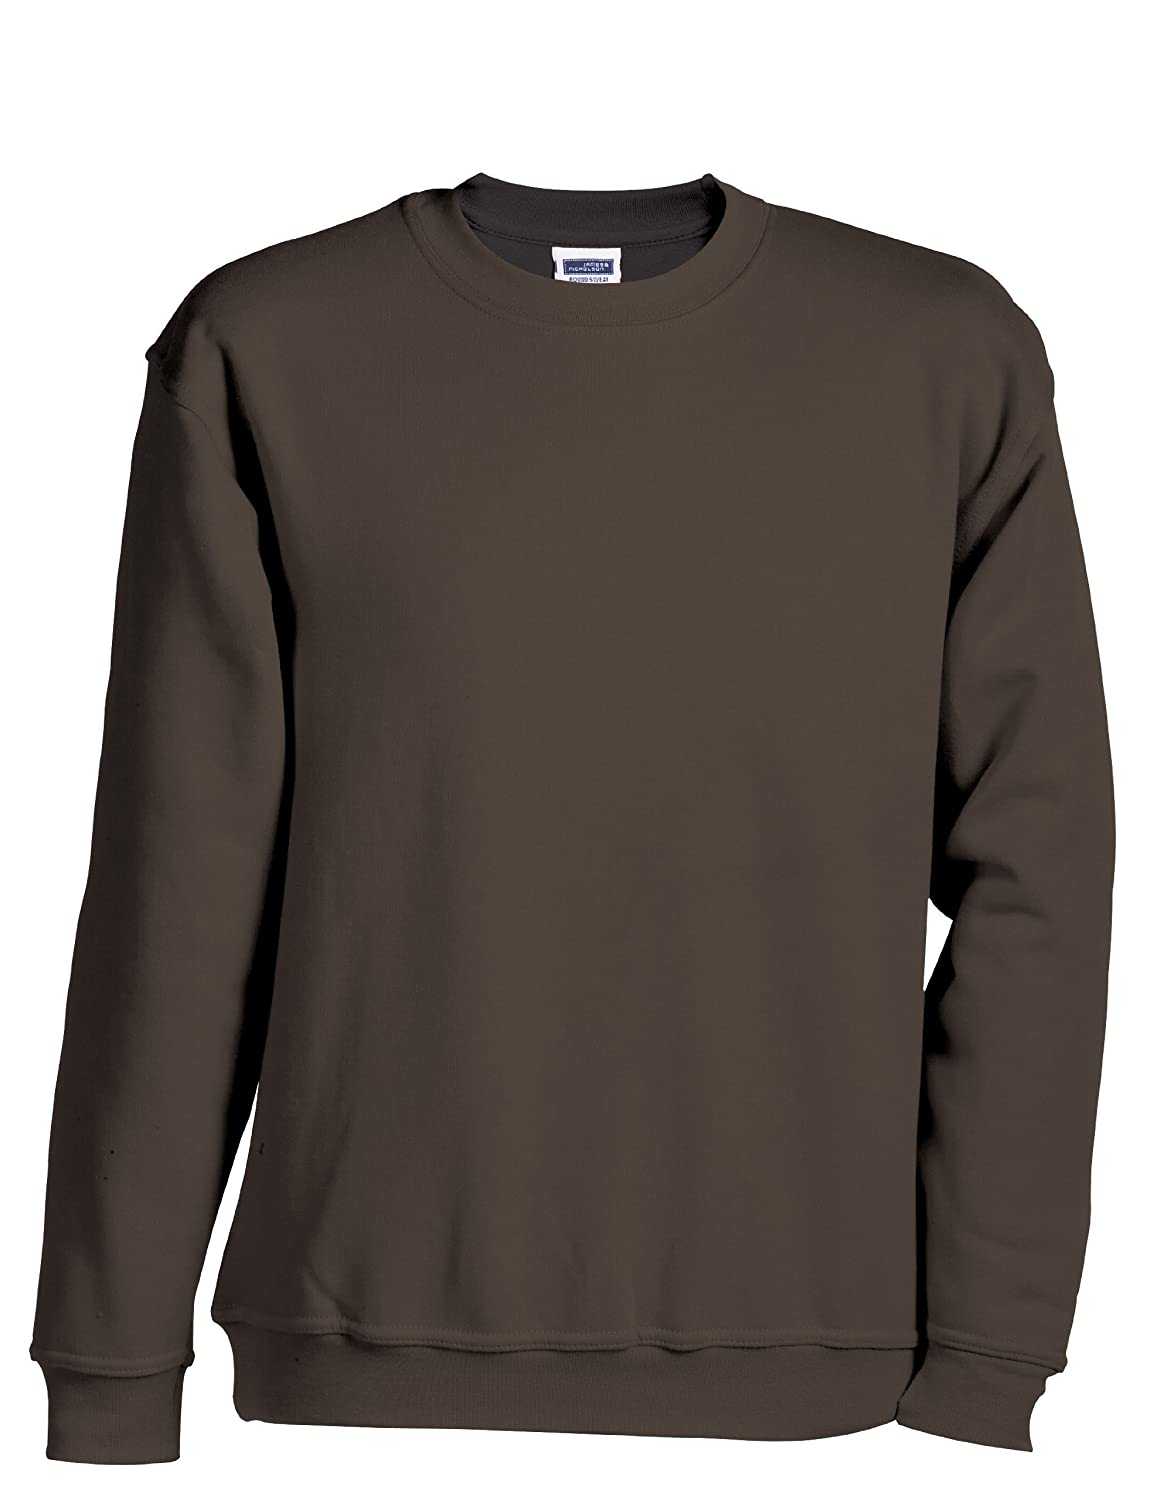 James & Nicholson Herren Sweatshirt Round Sweat Heavy 3XL, Braun - Braun JN040